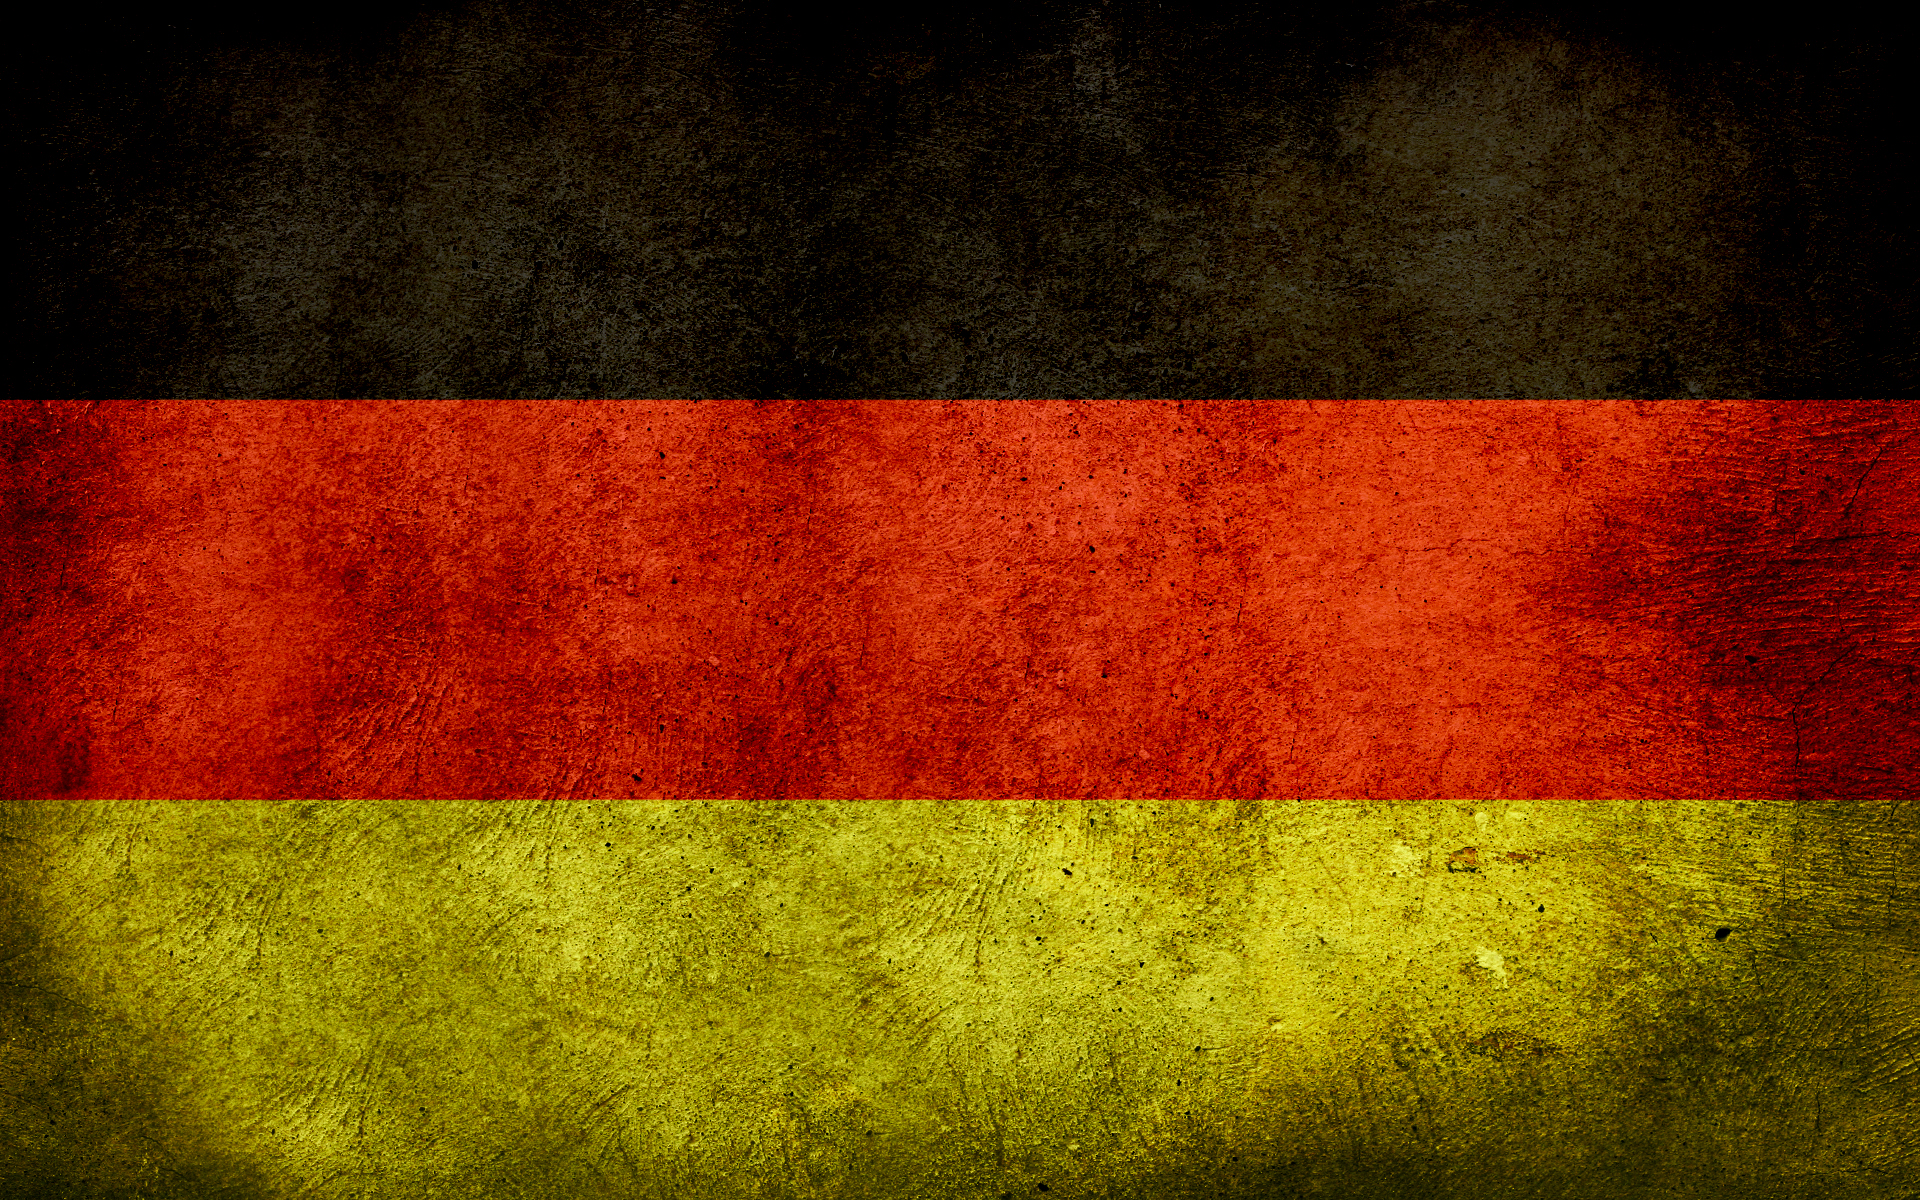 German flag hd wallpapers 6 150x150 Wallpaper, free german flag hd wallpapers images, pictures